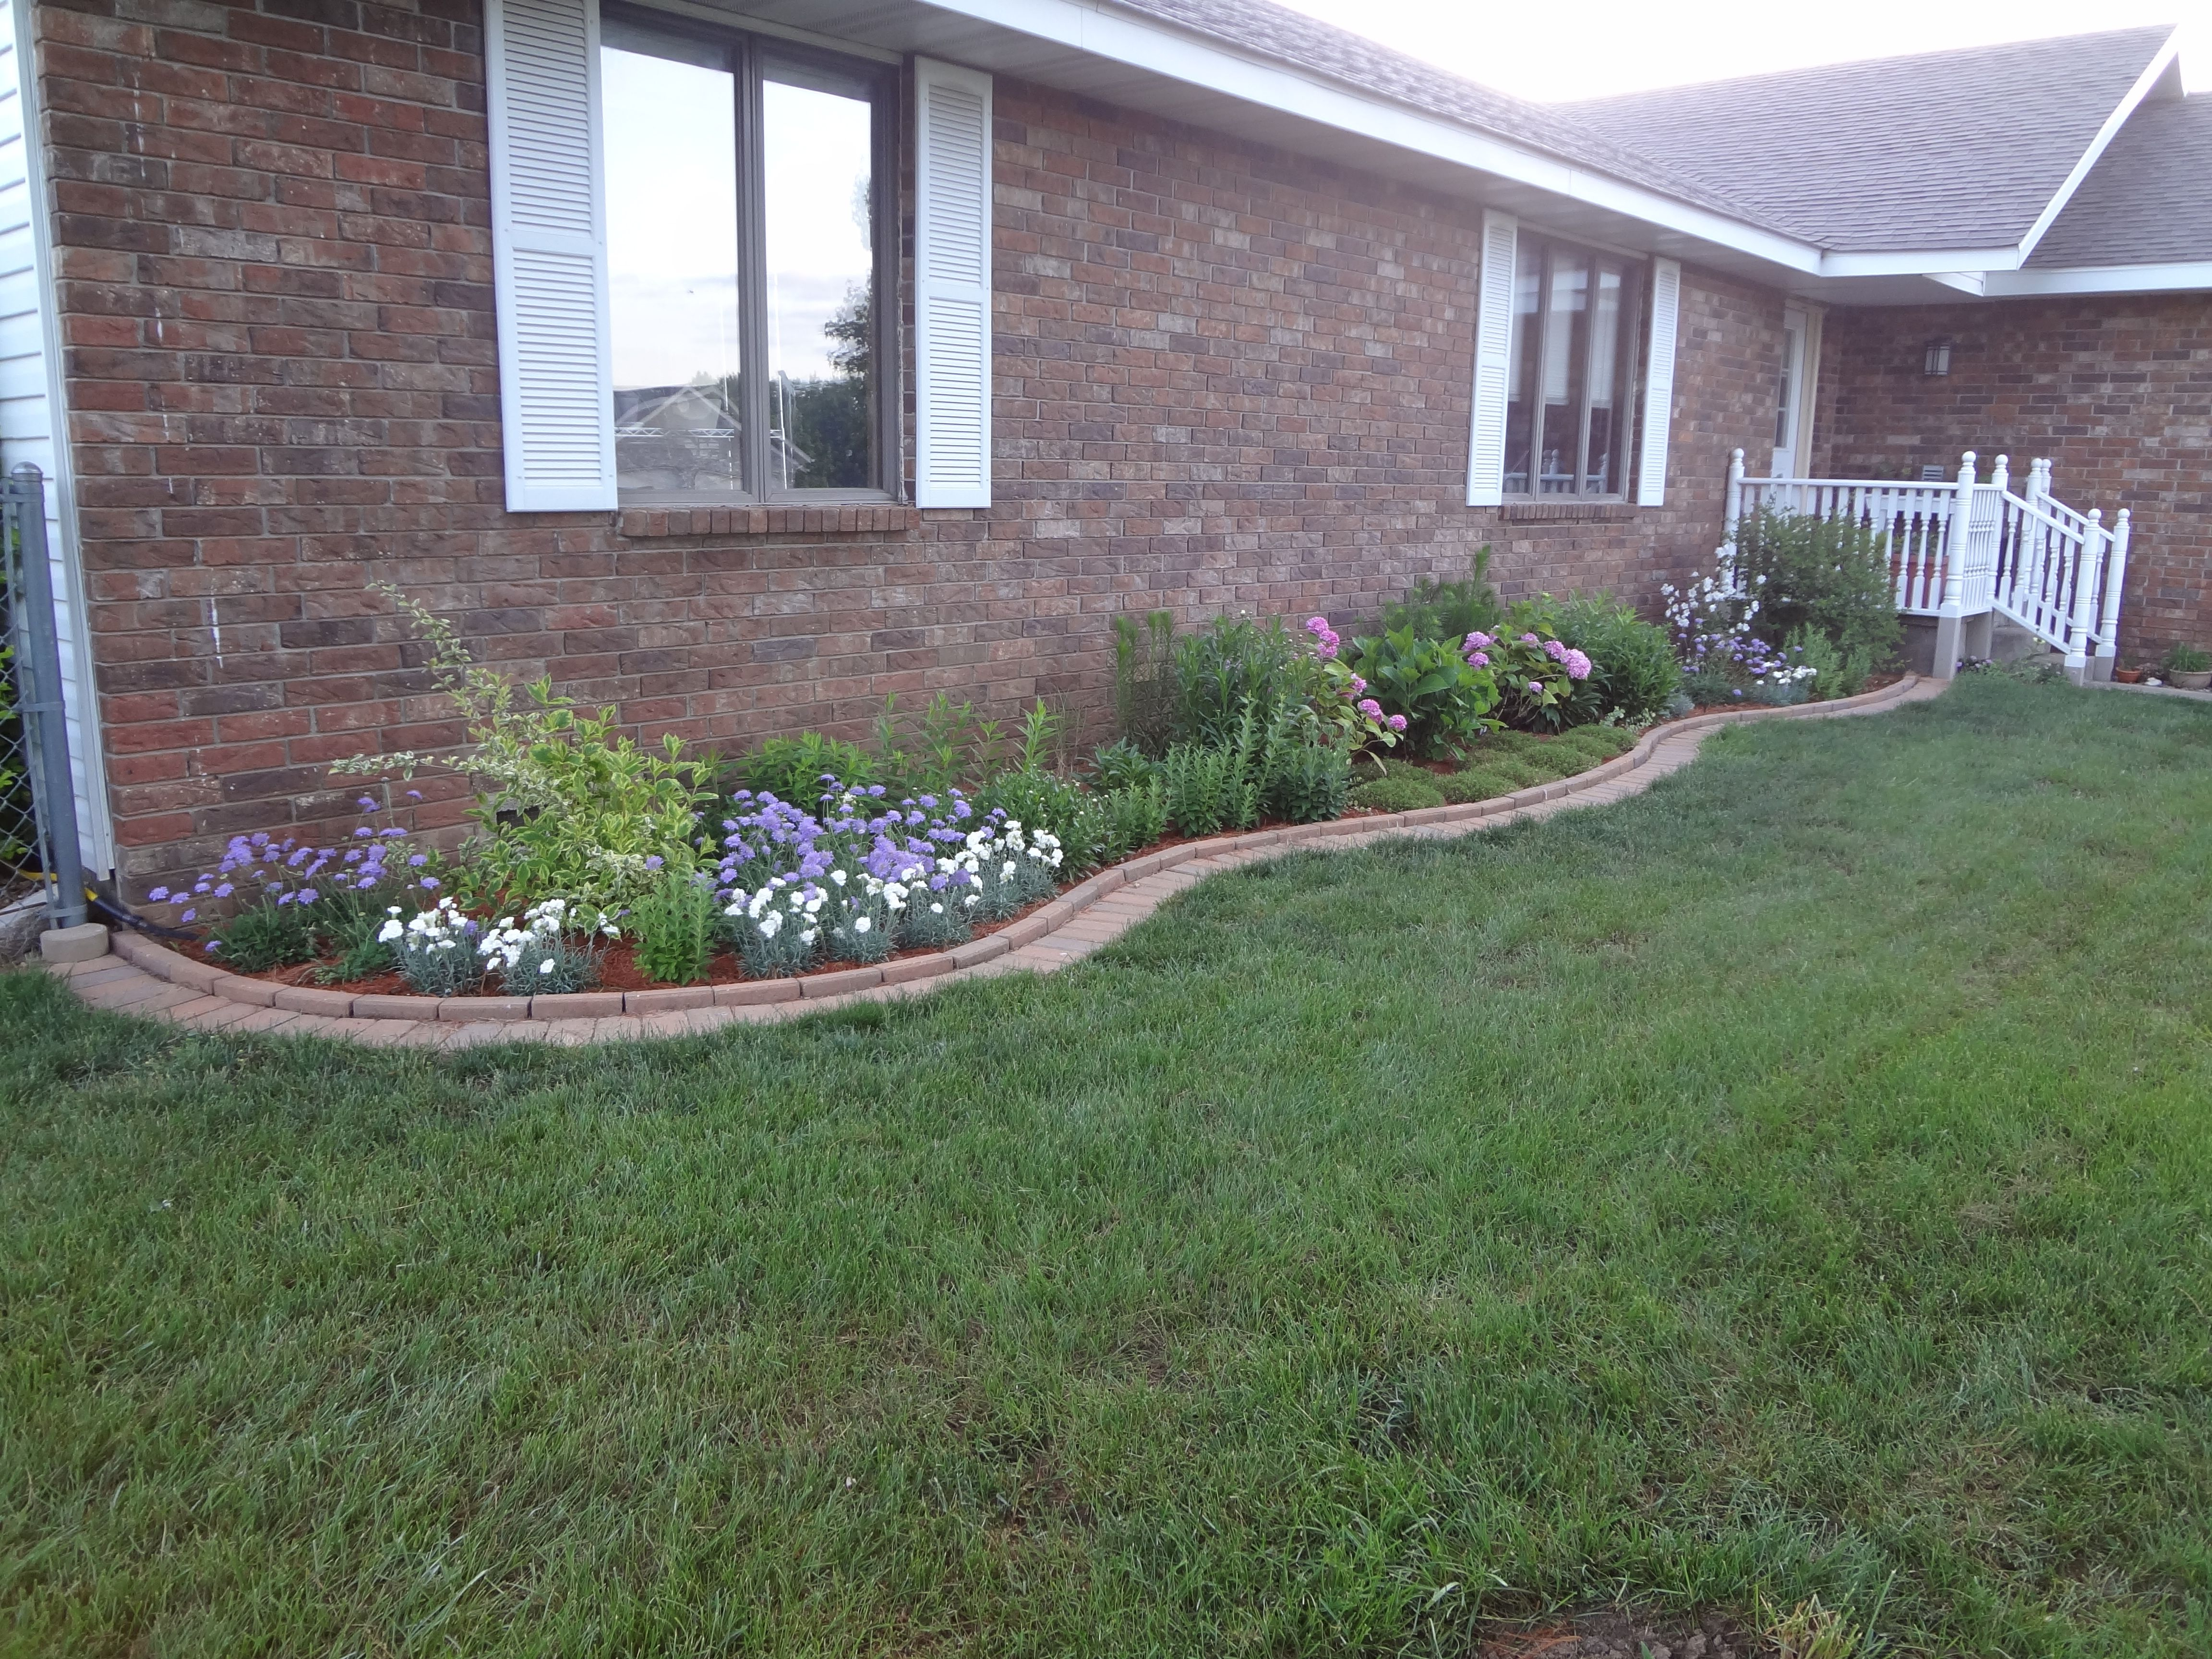 Foundation Border With Curved Brick Edging Filling In 400 x 300